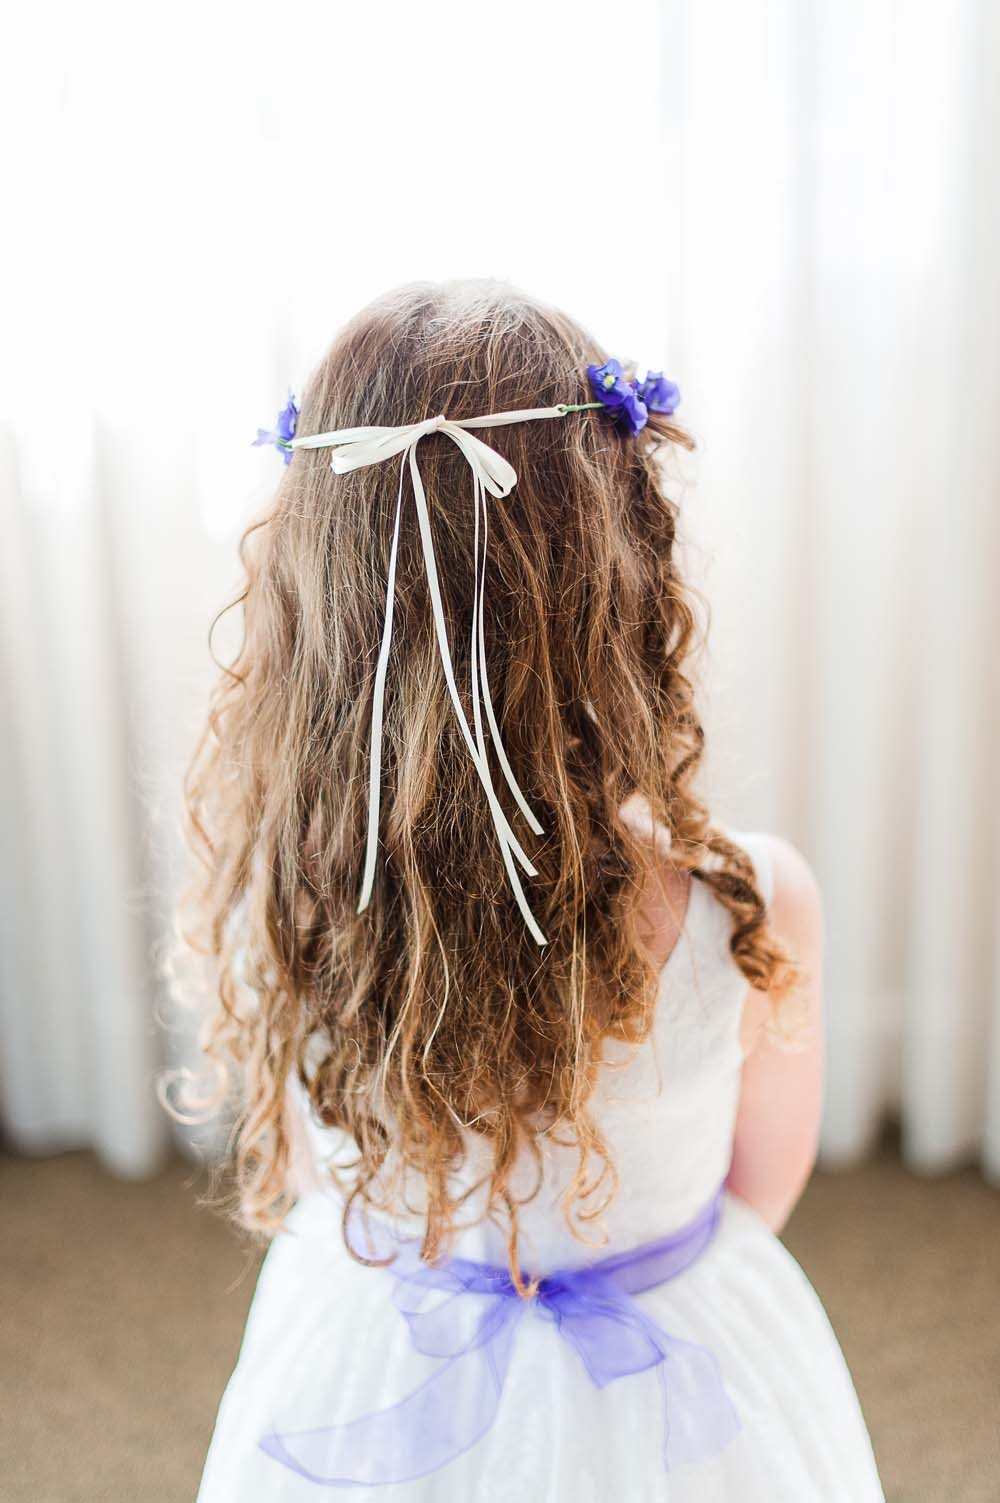 An Ultra Violet-Inspired Styled Shoot In Quebec - Hair